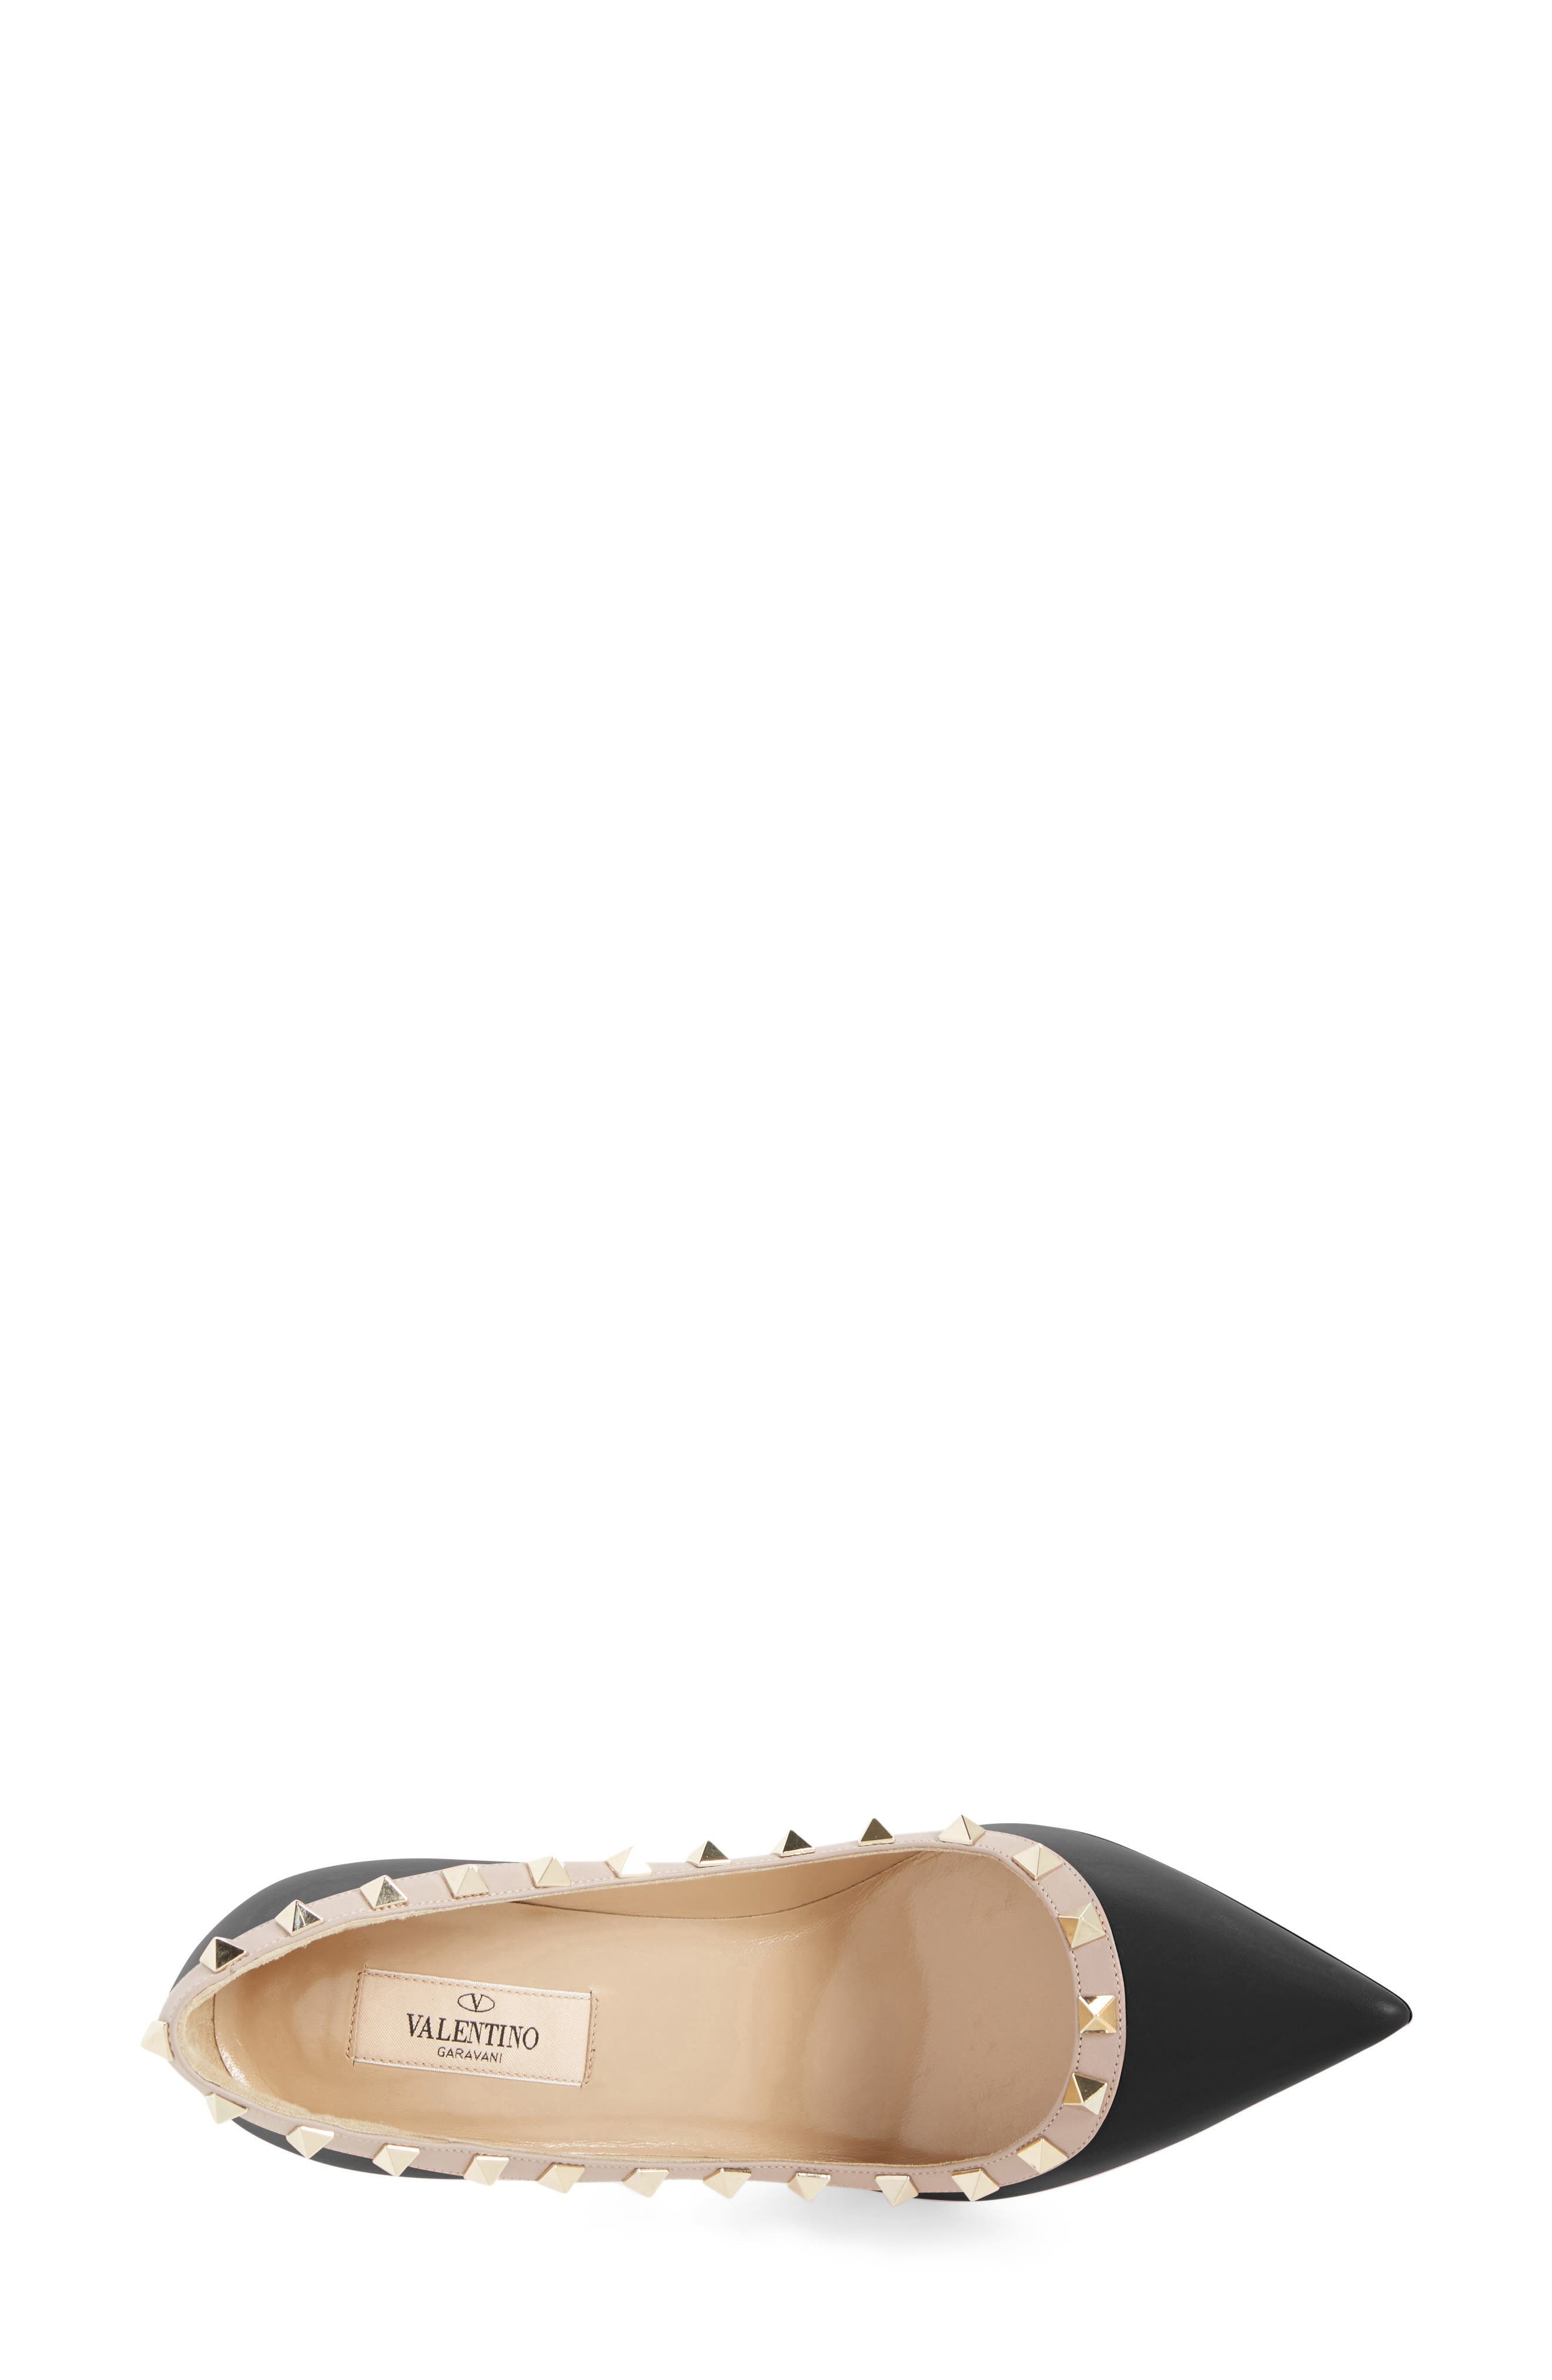 VALENTINO GARAVANI, Rockstud Pointy Toe Pump, Alternate thumbnail 3, color, BLACK/ NUDE LEATHER